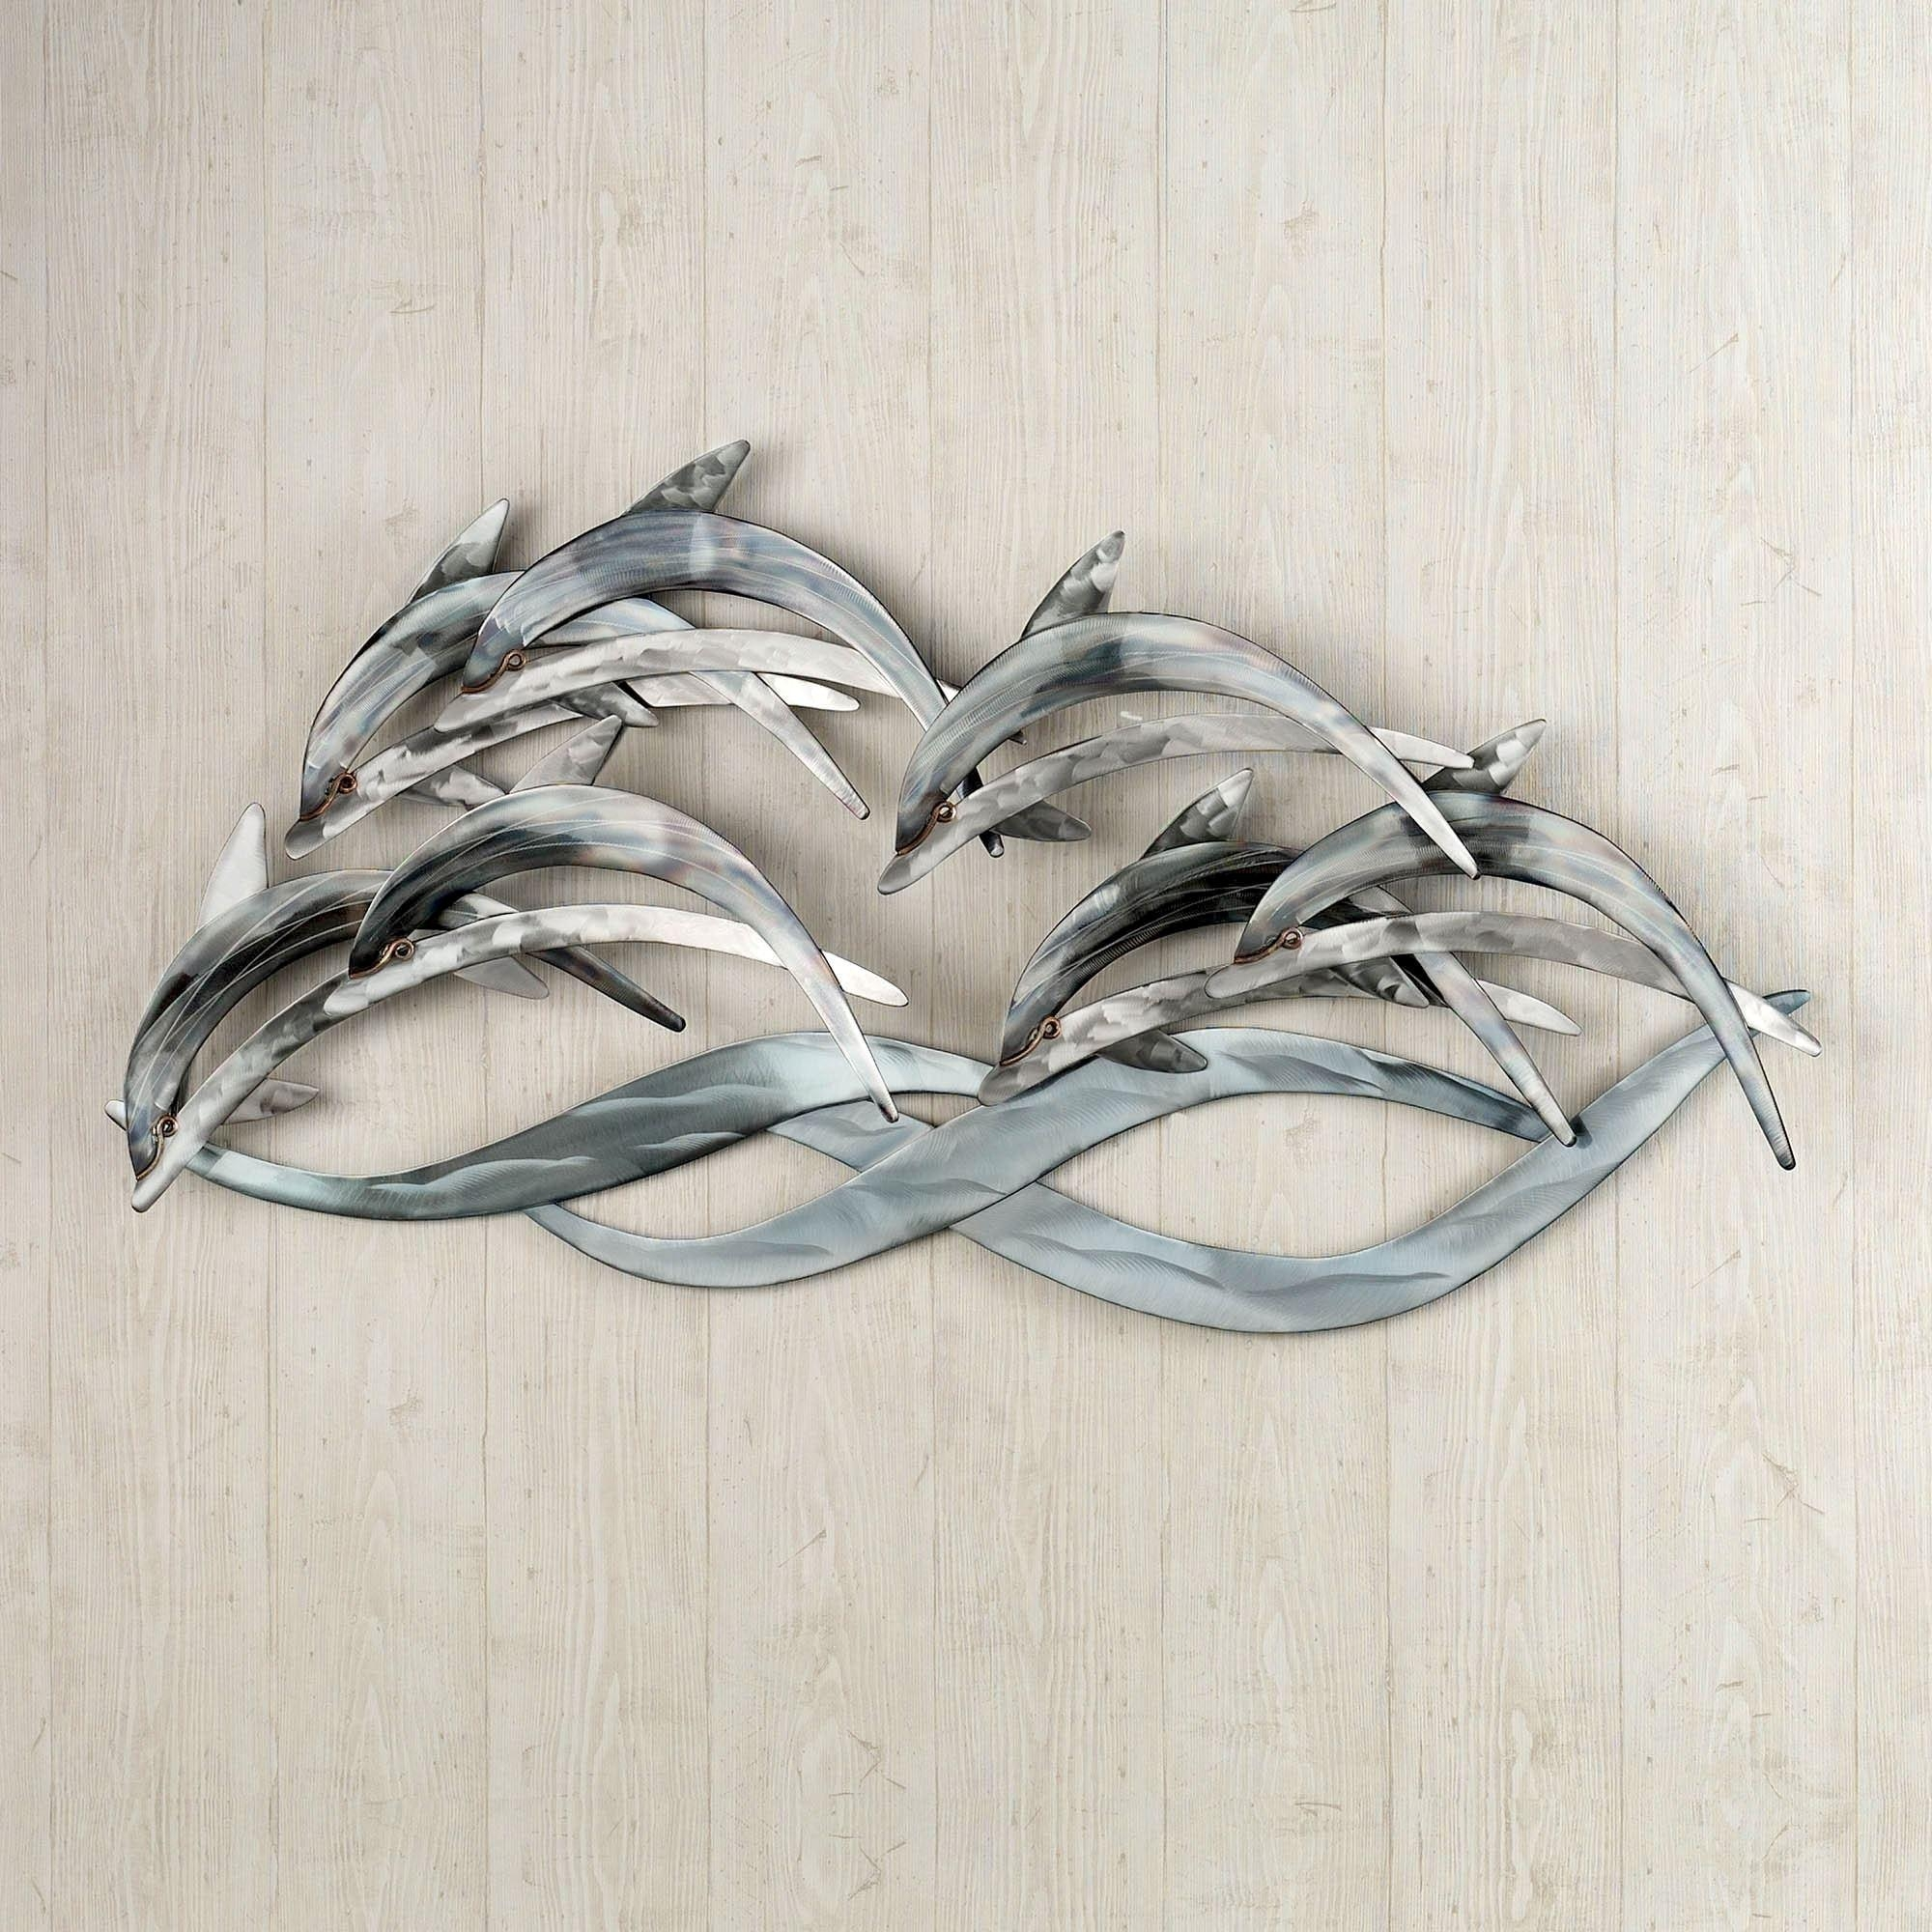 Wave Dancers Dolphin Stainless Steel Wall Sculpture Pertaining To Stainless Steel Outdoor Wall Art (View 8 of 20)